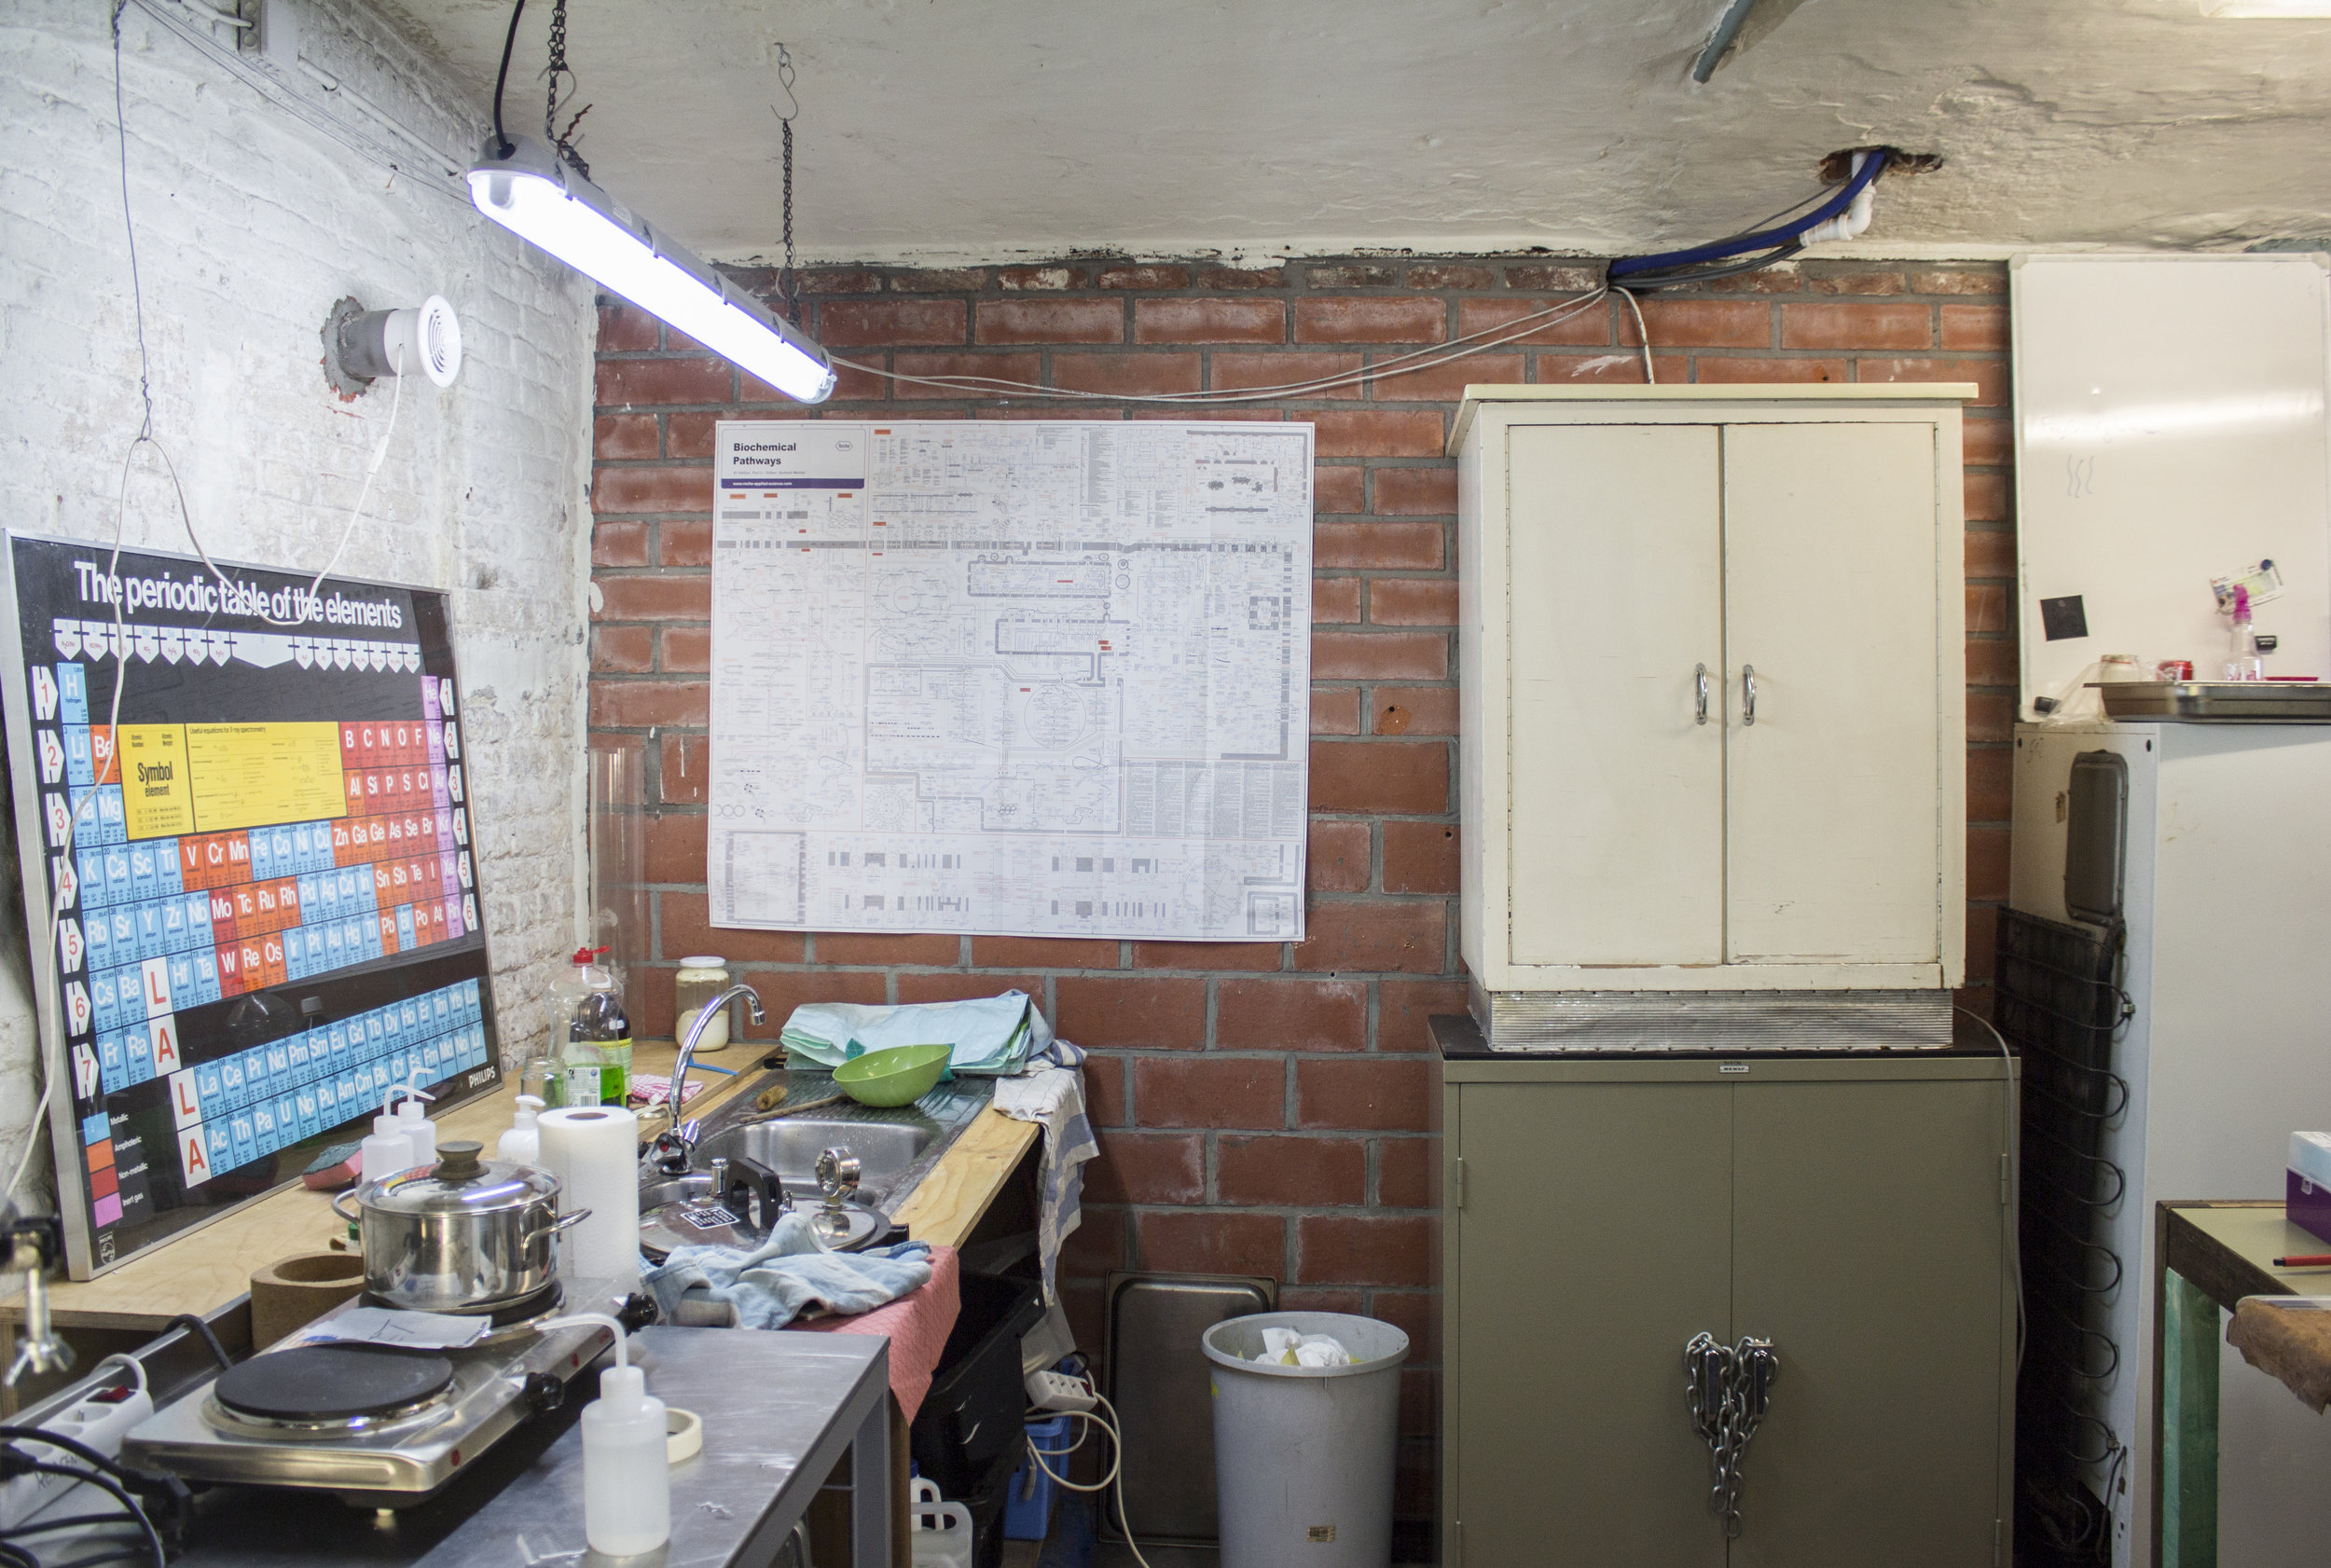 Where it all began, the ReaGent open biolab. Photo: Kim Verhaeghe.